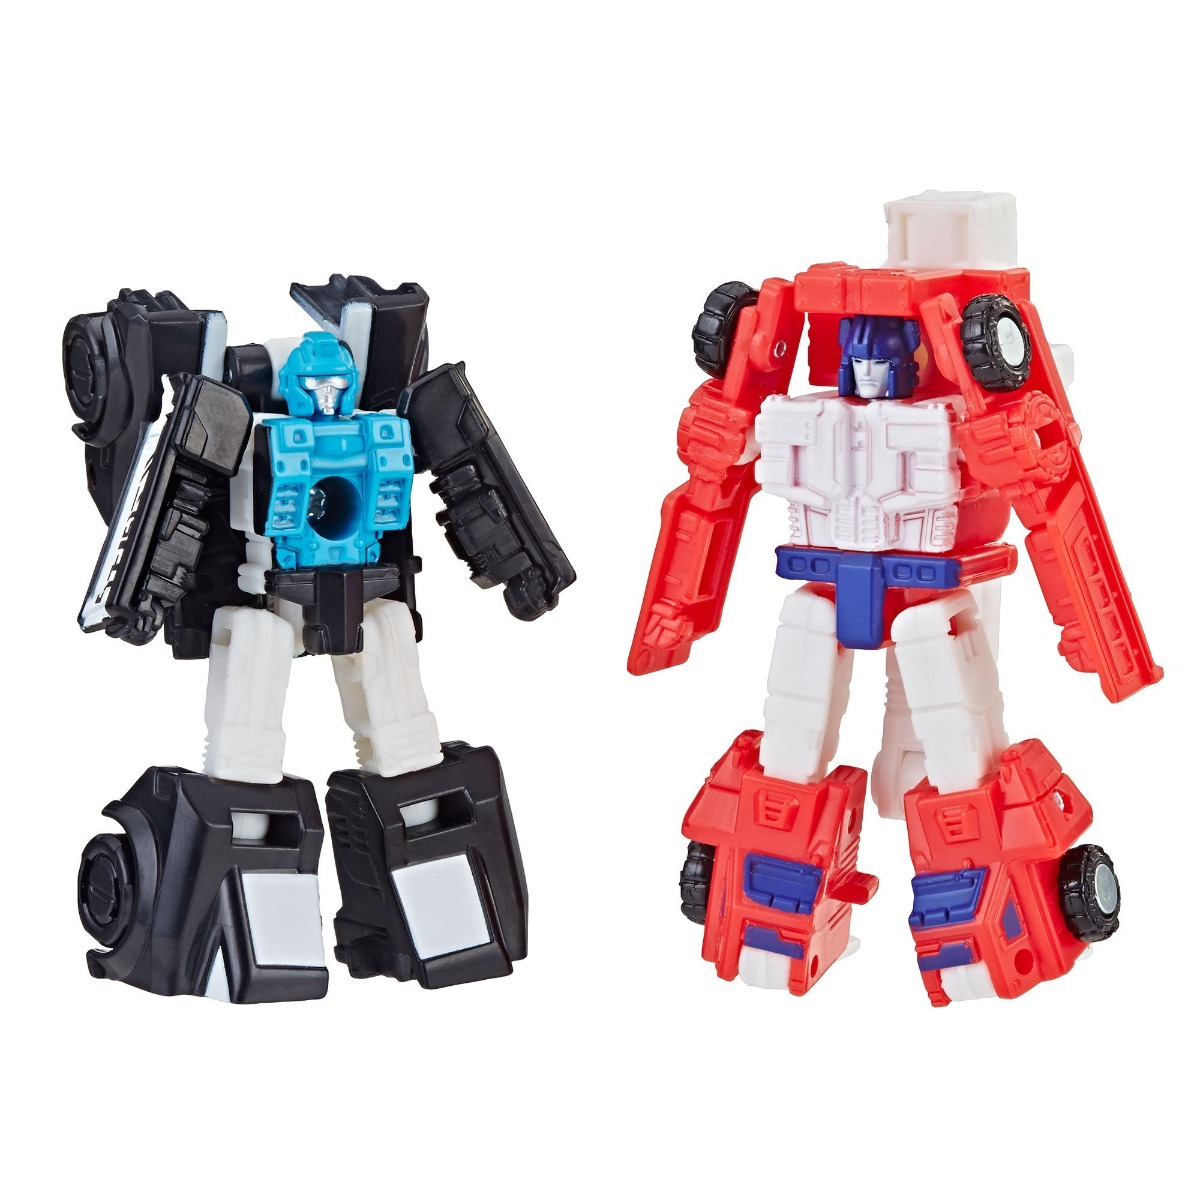 Figurina Transformers Micromaster WFC, Red Heat, Stakeout, E3562 imagine 2021